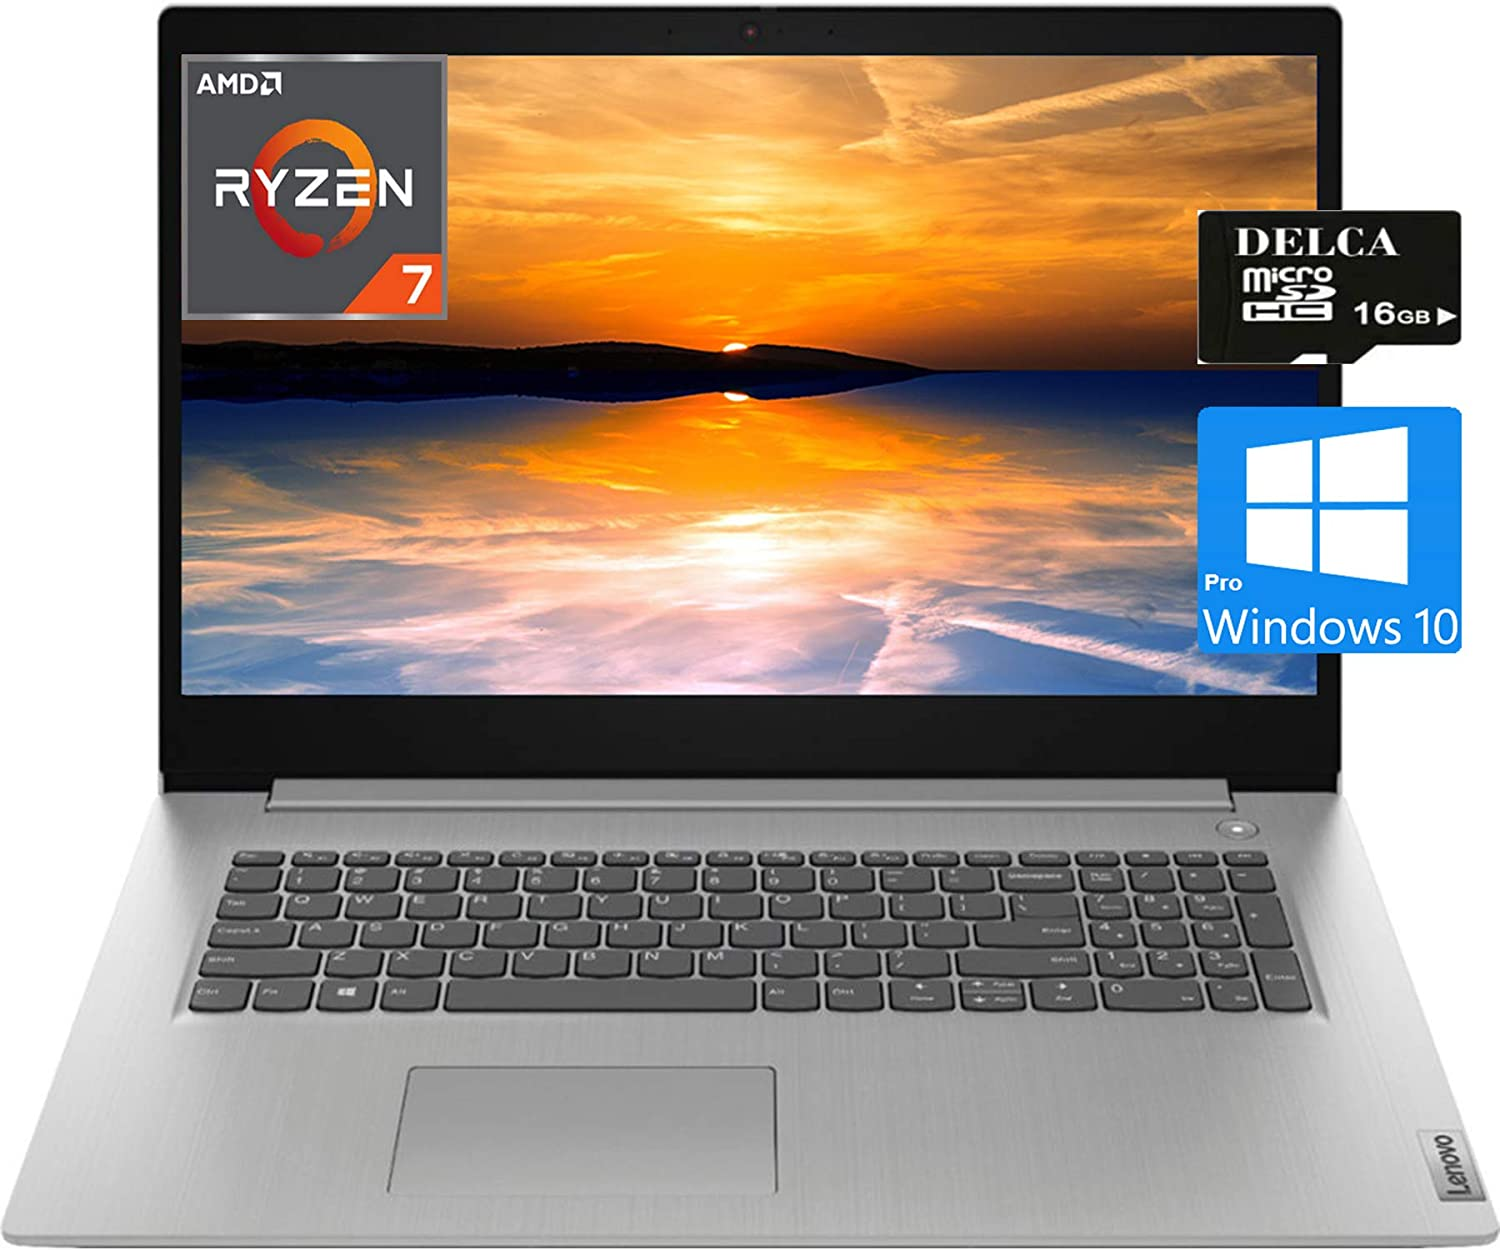 "Lenovo IdeaPad 3 17 Premium 2020 Laptop Computer I 17.3"" HD+ I AMD Quad-Core Ryzen 7 3700U (>i5-5200U) I 12GB DDR4 512GB SSD I HDMI Fingerprint WiFi Dolby Win 10 Pro + Delca 16GB Micro SD Card"